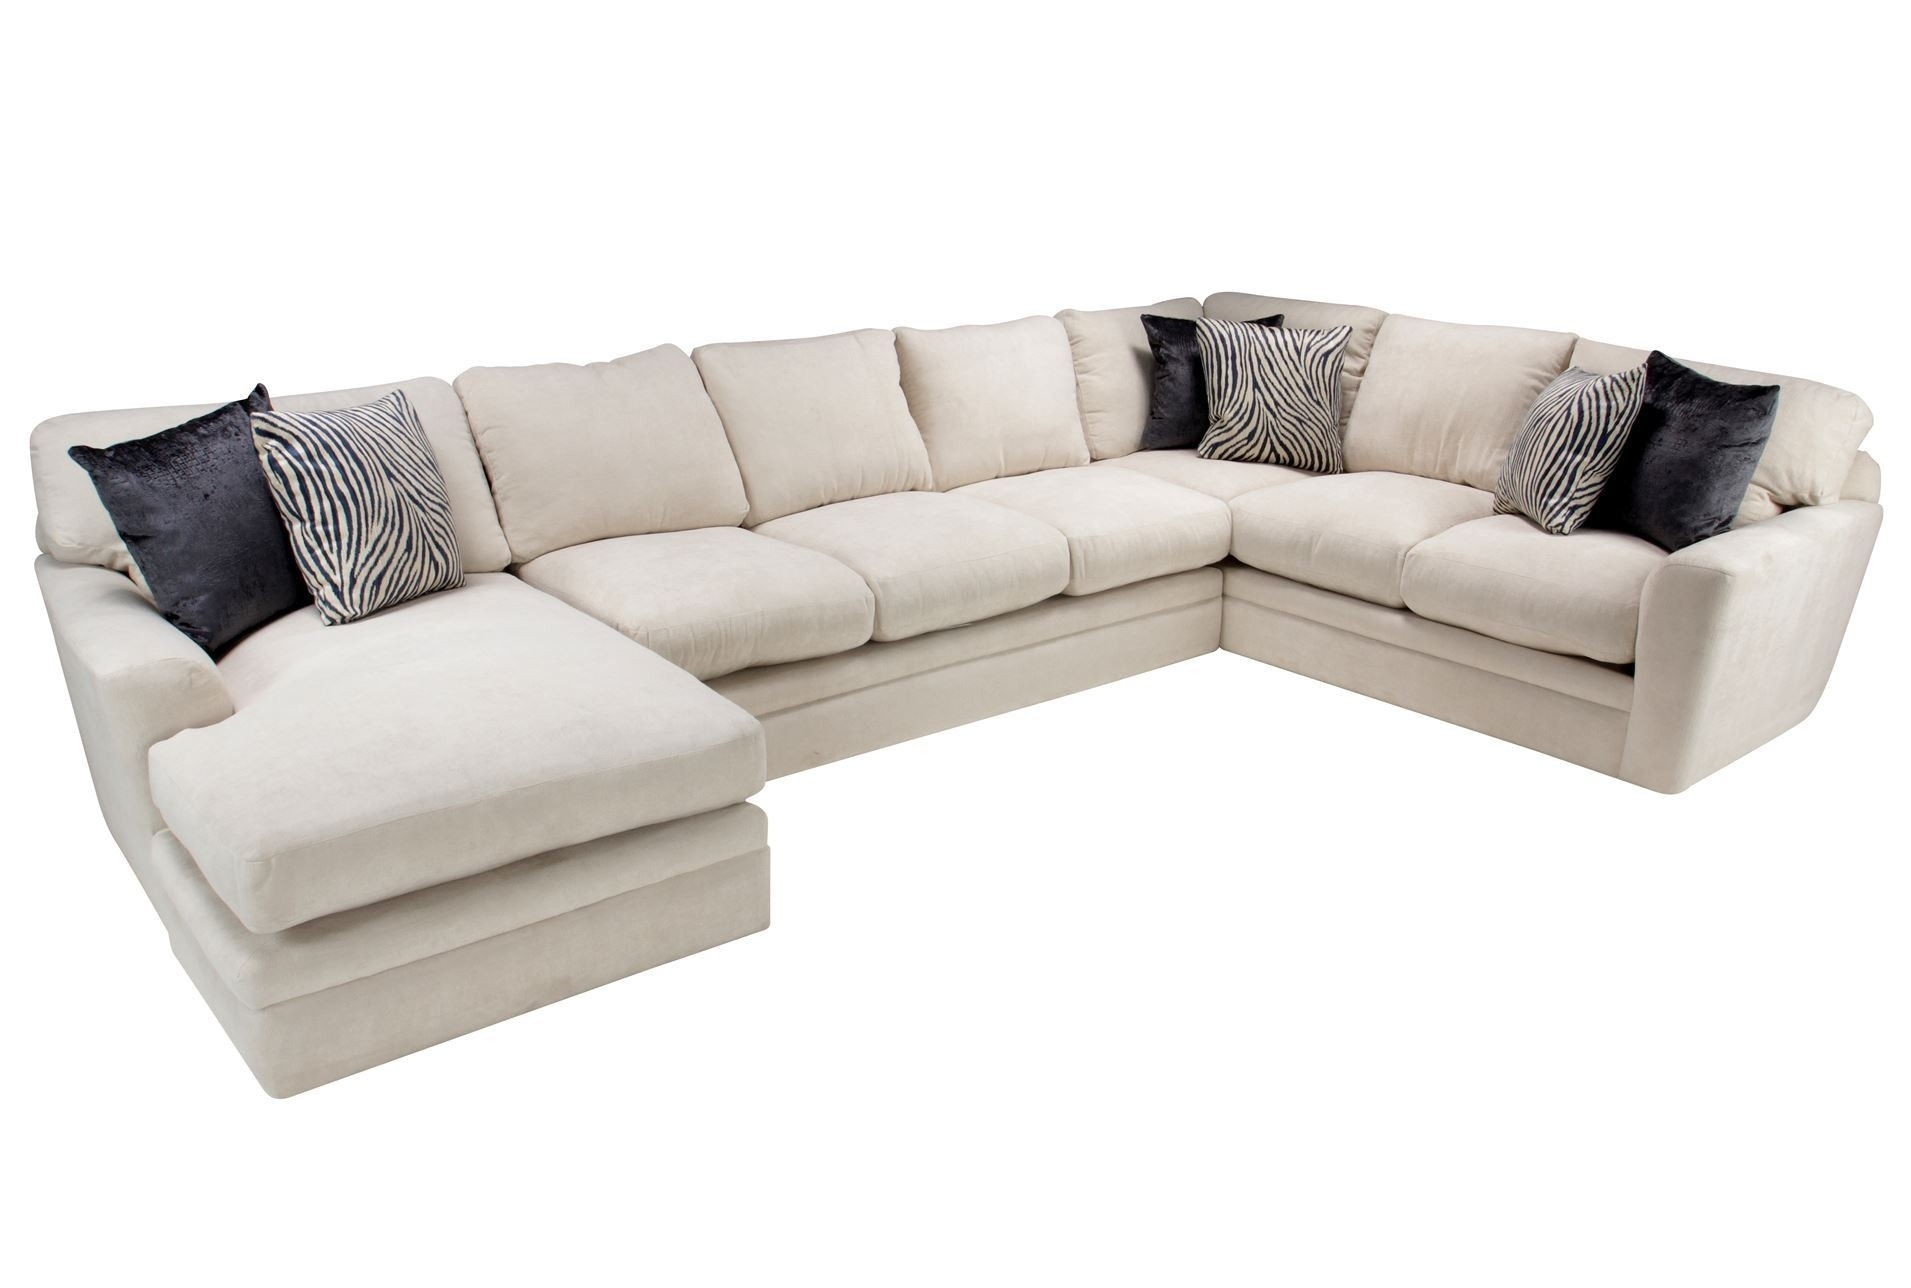 Living Spaces Sectional Sofas Kerri 2 Piece W Raf Chaise 107153 0 throughout Kerri 2 Piece Sectionals With Raf Chaise (Image 26 of 30)